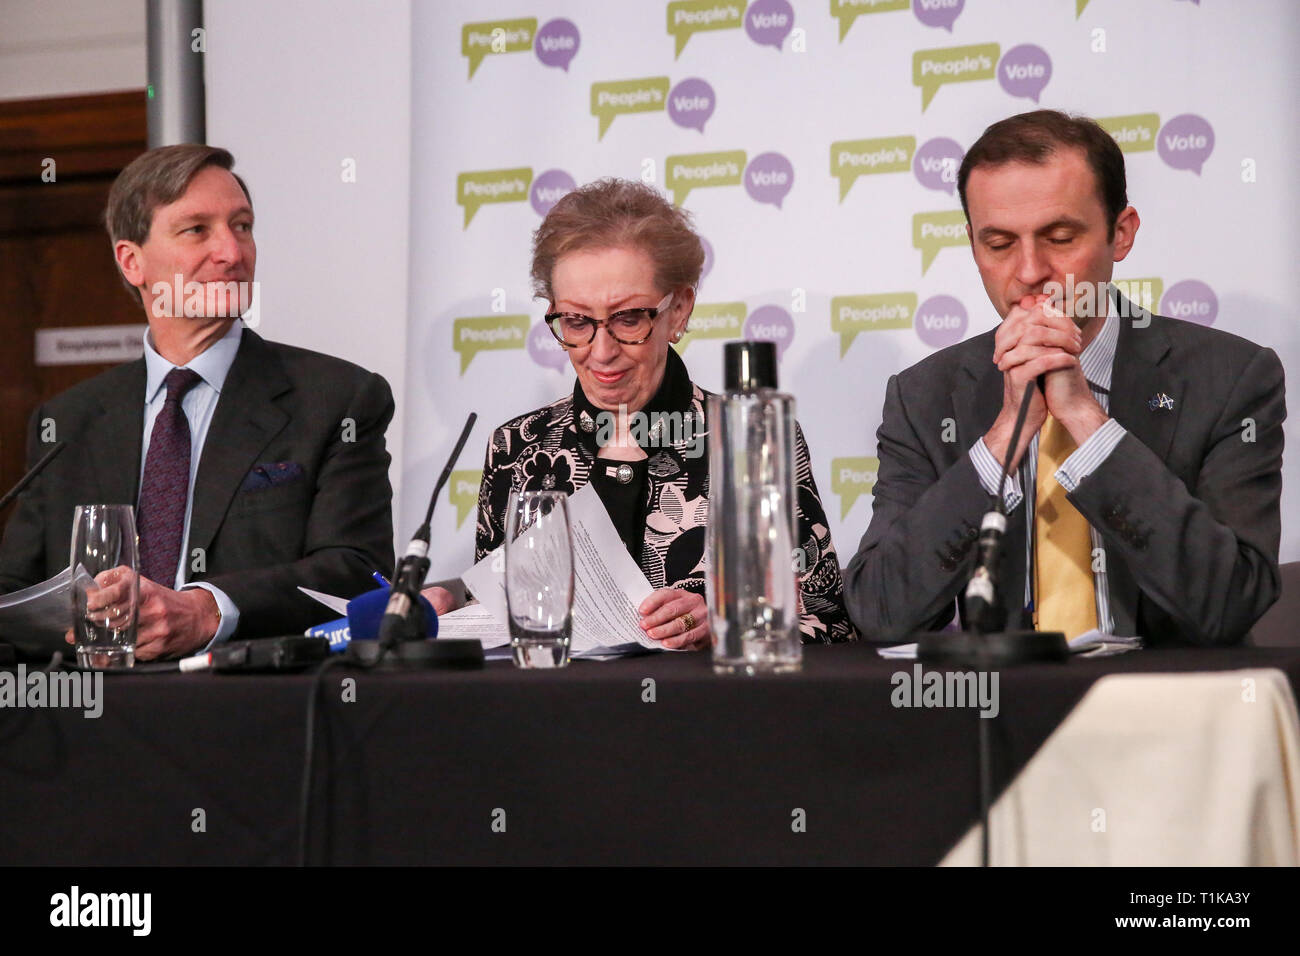 London, UK, UK. 27th Mar, 2019. Conservative former Attorney General (L), Dominic Grieve MP - Labour former Foreign Secretary (C), Margaret Beckett MP - SNP Foreign Affairs and Europe (R) Stephen Gethins are seen at a People's Vote press conference in Westminster setting out an analysis of the different Brexit options facing Members of Parliament in indicative votes. British Prime Minister Theresa May told the backbench Tory MPs this evening that she will stand down if they back her EU withdrawal deal. Credit: Dinendra Haria/SOPA Images/ZUMA Wire/Alamy Live News Stock Photo